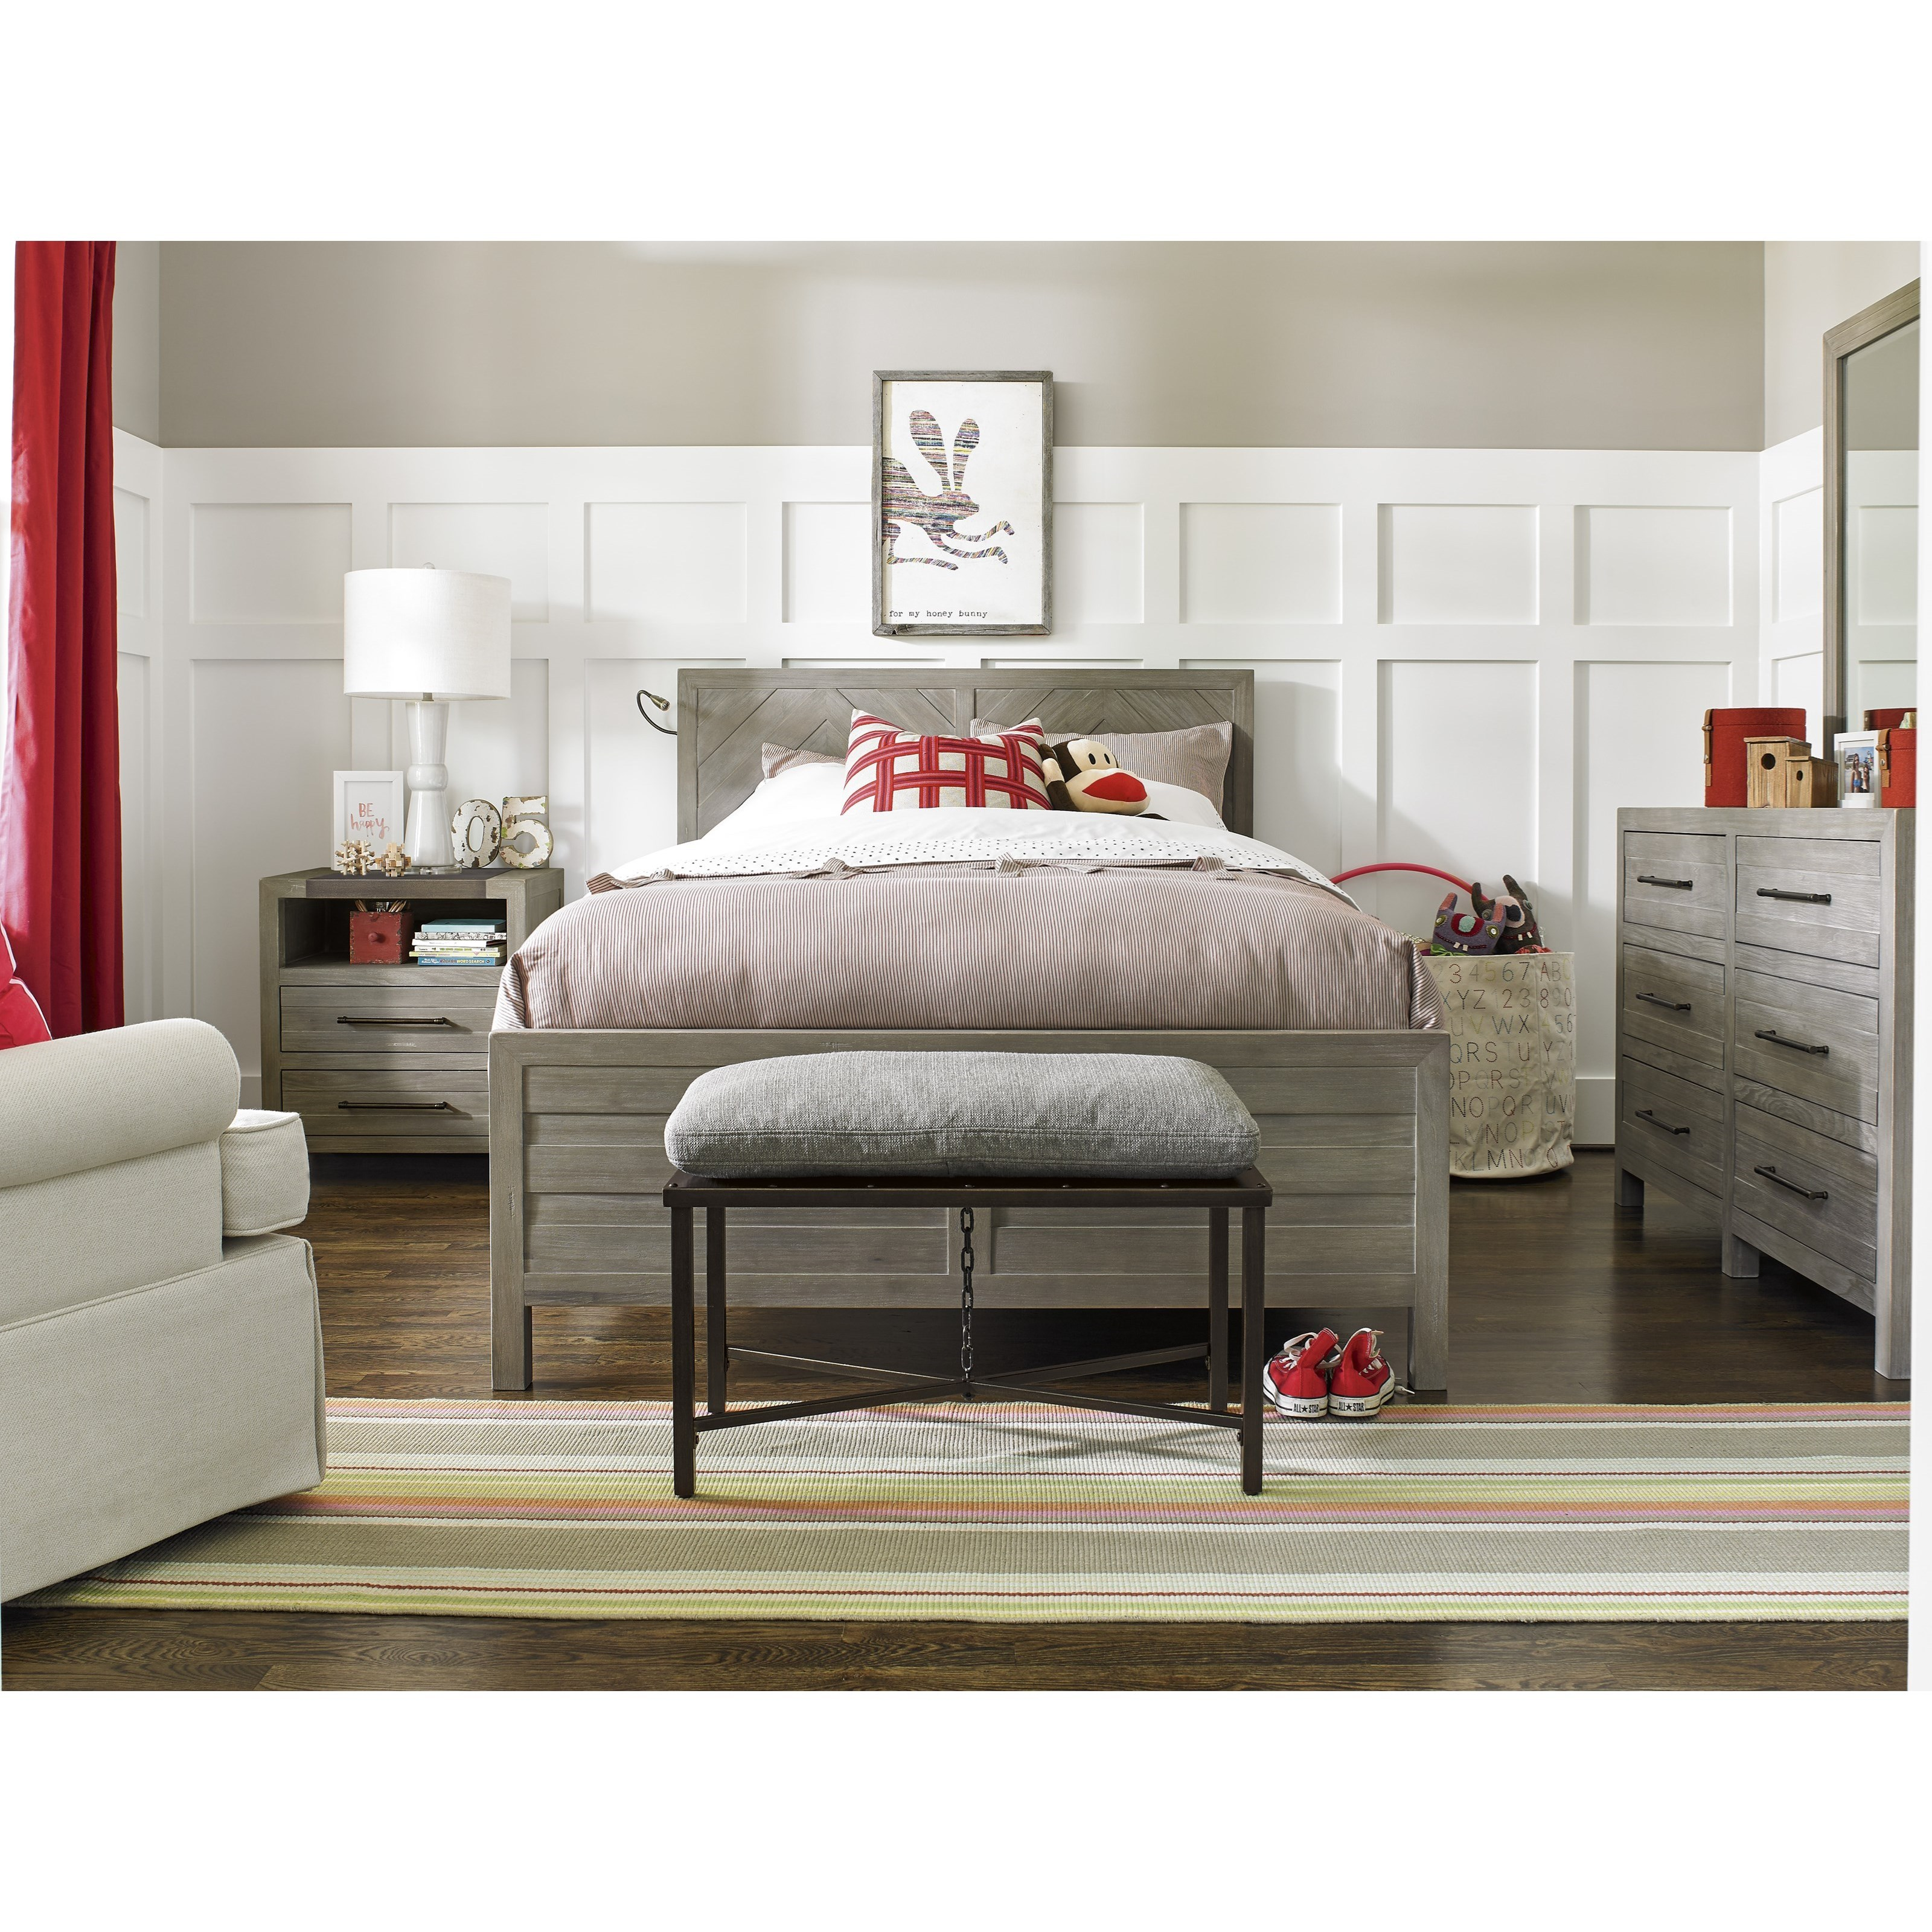 Smartstuff Scrimmage Full Reading Bed With Snake Light